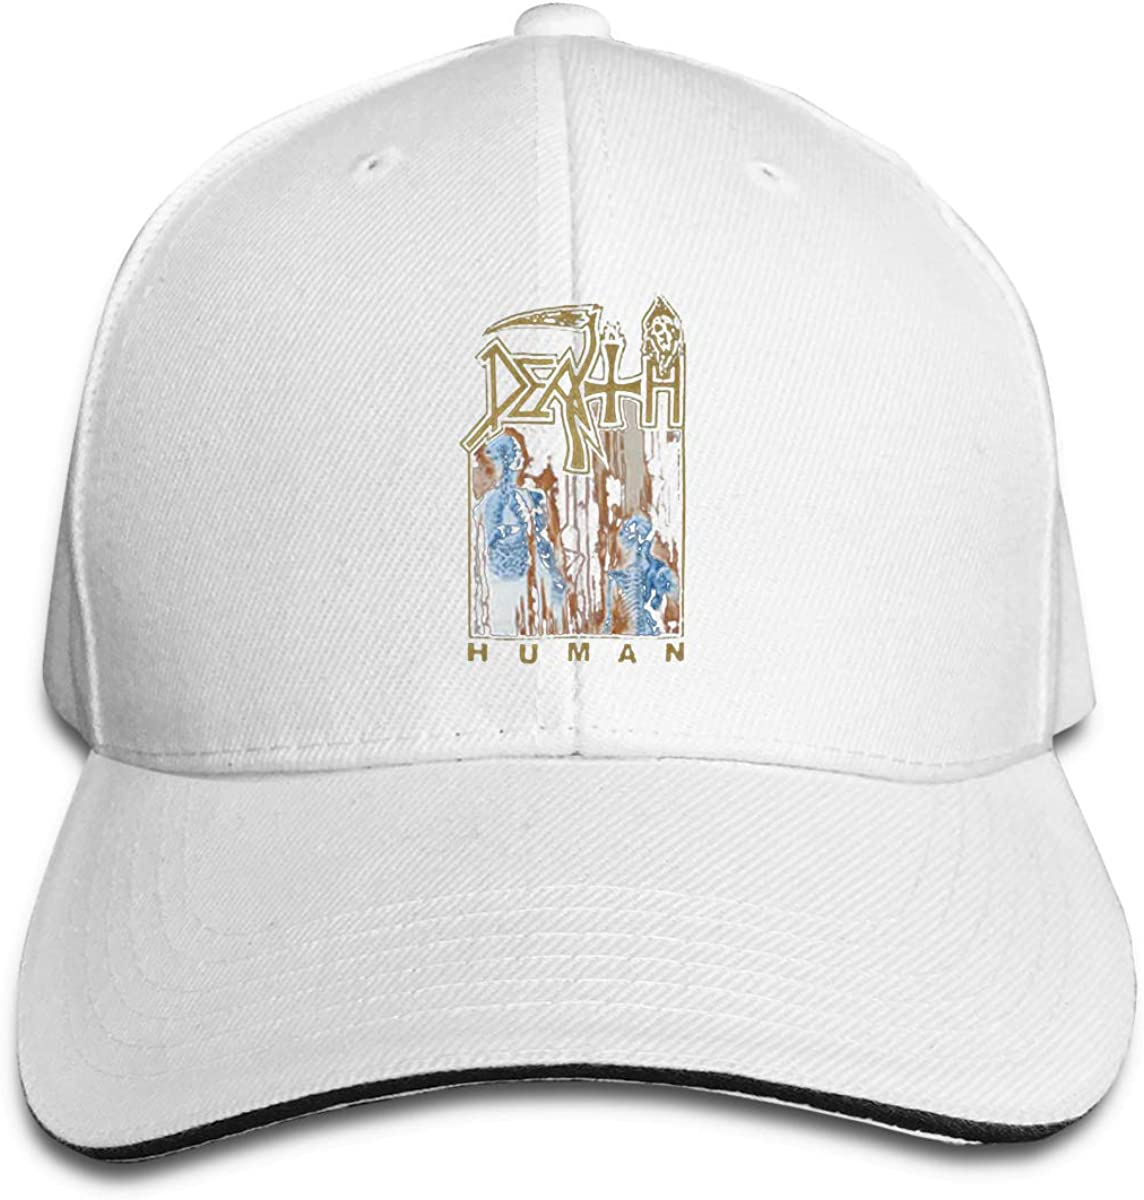 Death Men S Human Adjustable Sports Hats Sun Hat for Men and Women